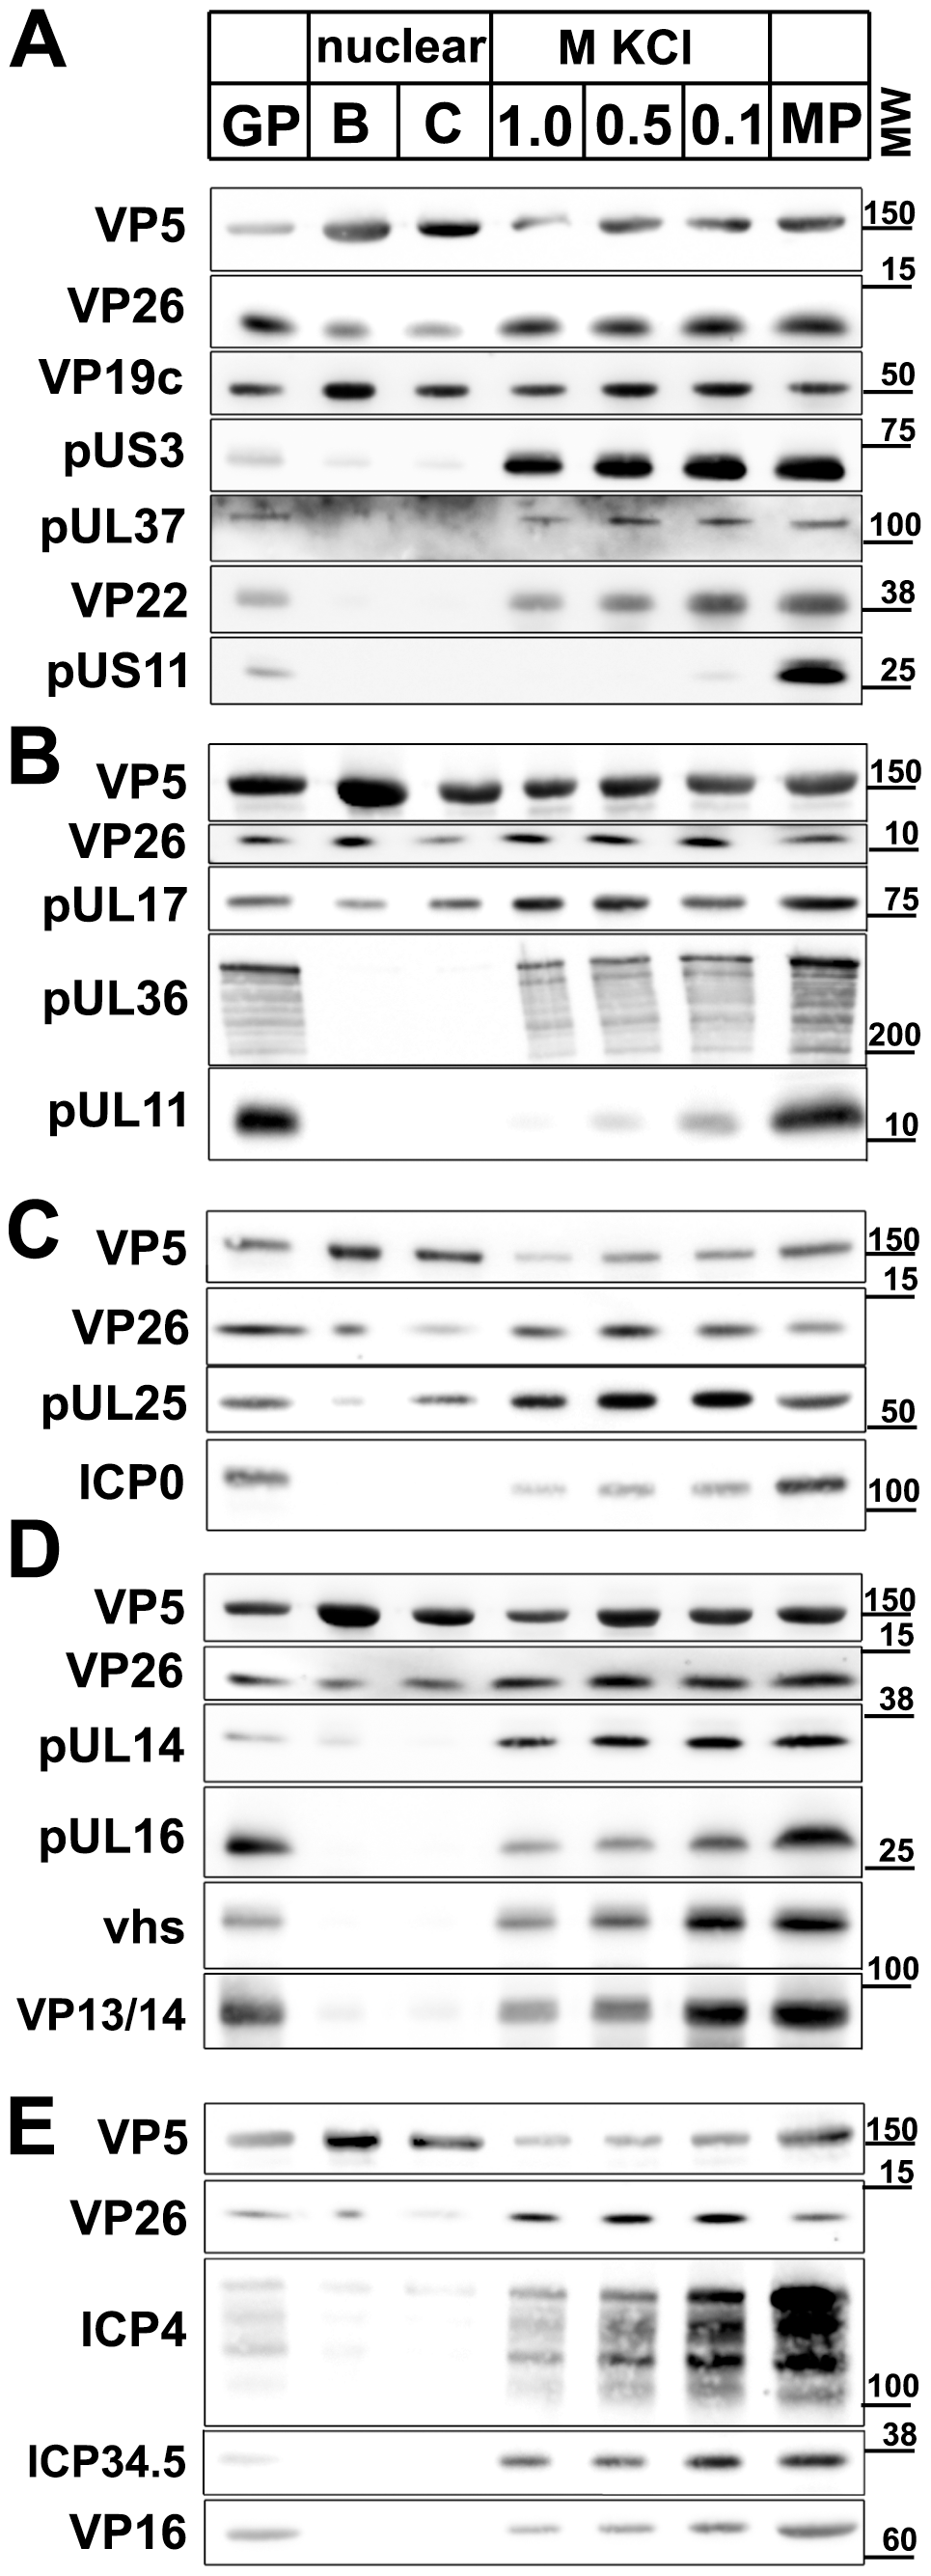 Immunoblot characterization of nuclear and viral HSV1 capsids.